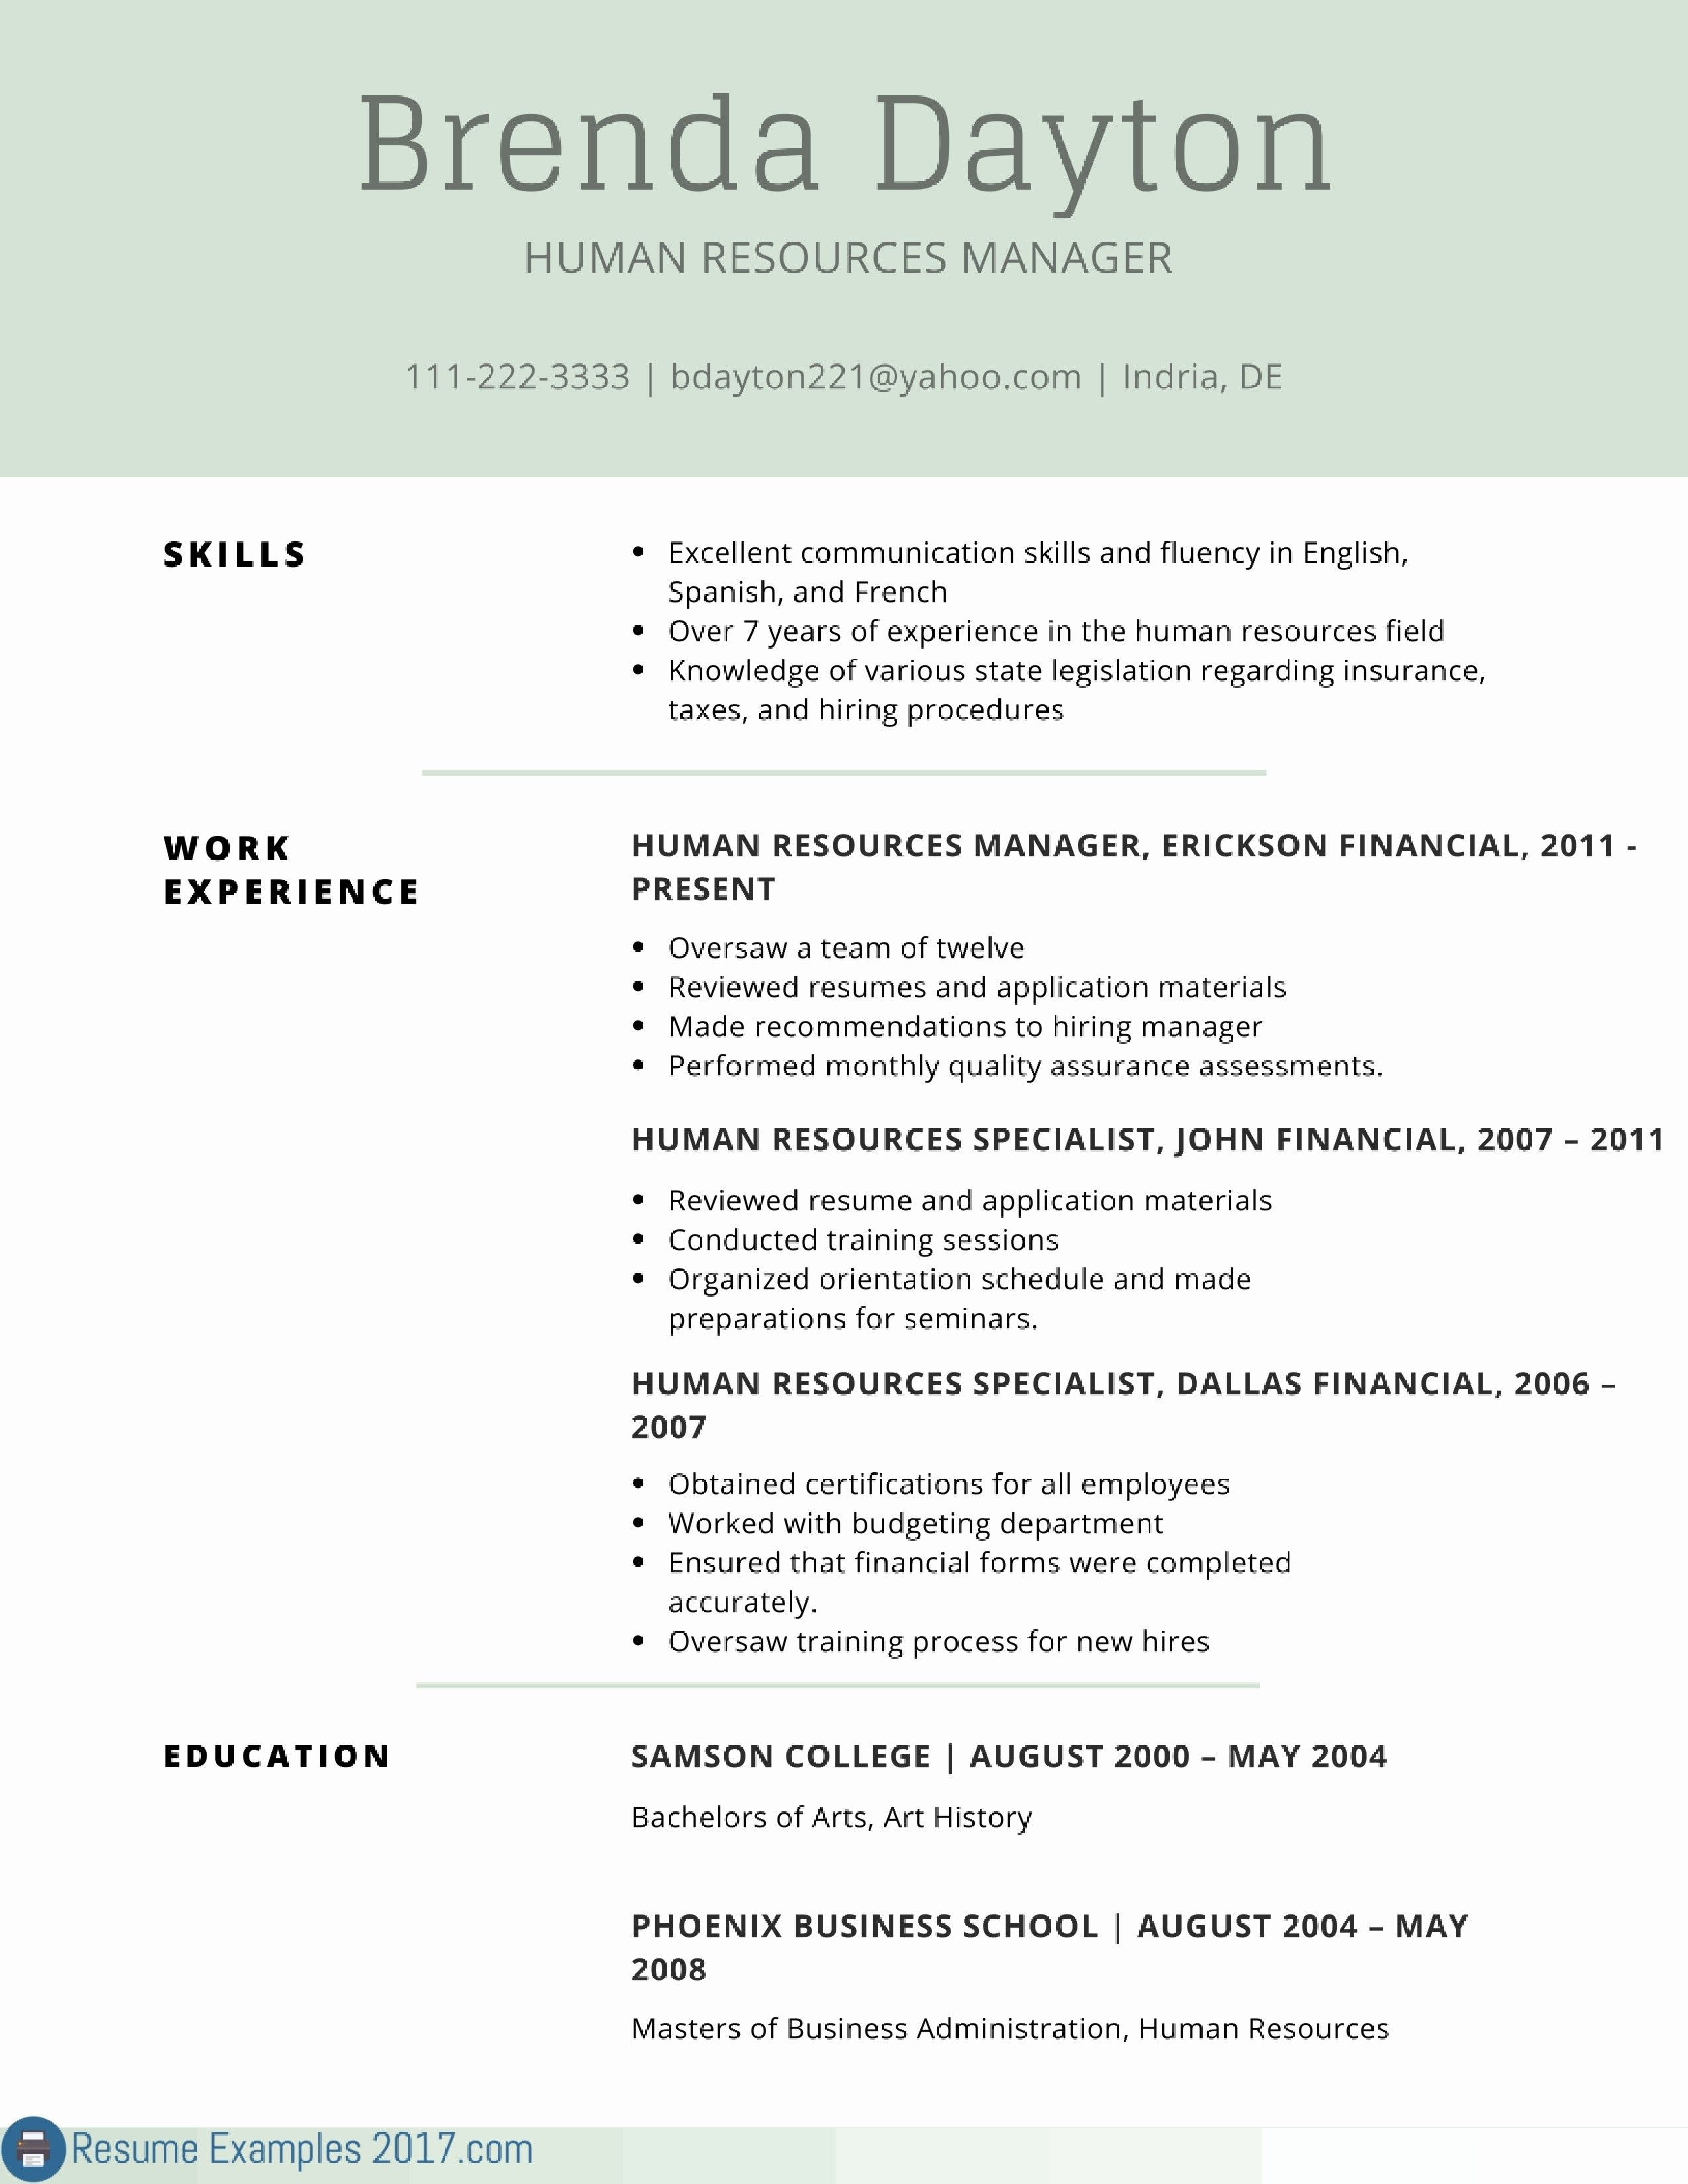 74 Luxury Photos Of Writing An Executive Resume Examples Check More At